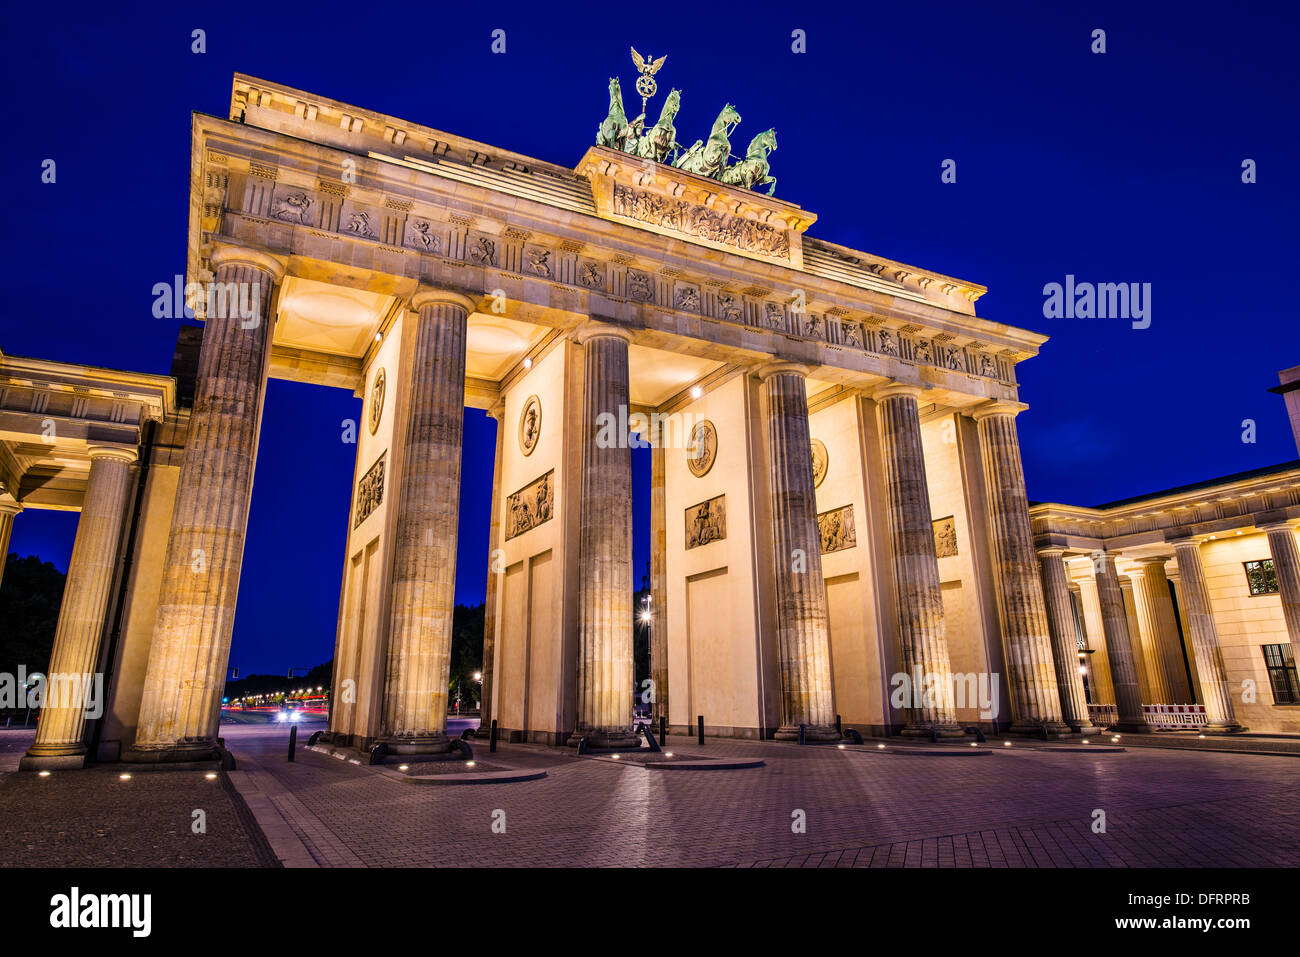 Brandenburg Gate in Berlin, Germany. Brandenburg Gate in Berlin, Germany. - Stock Image